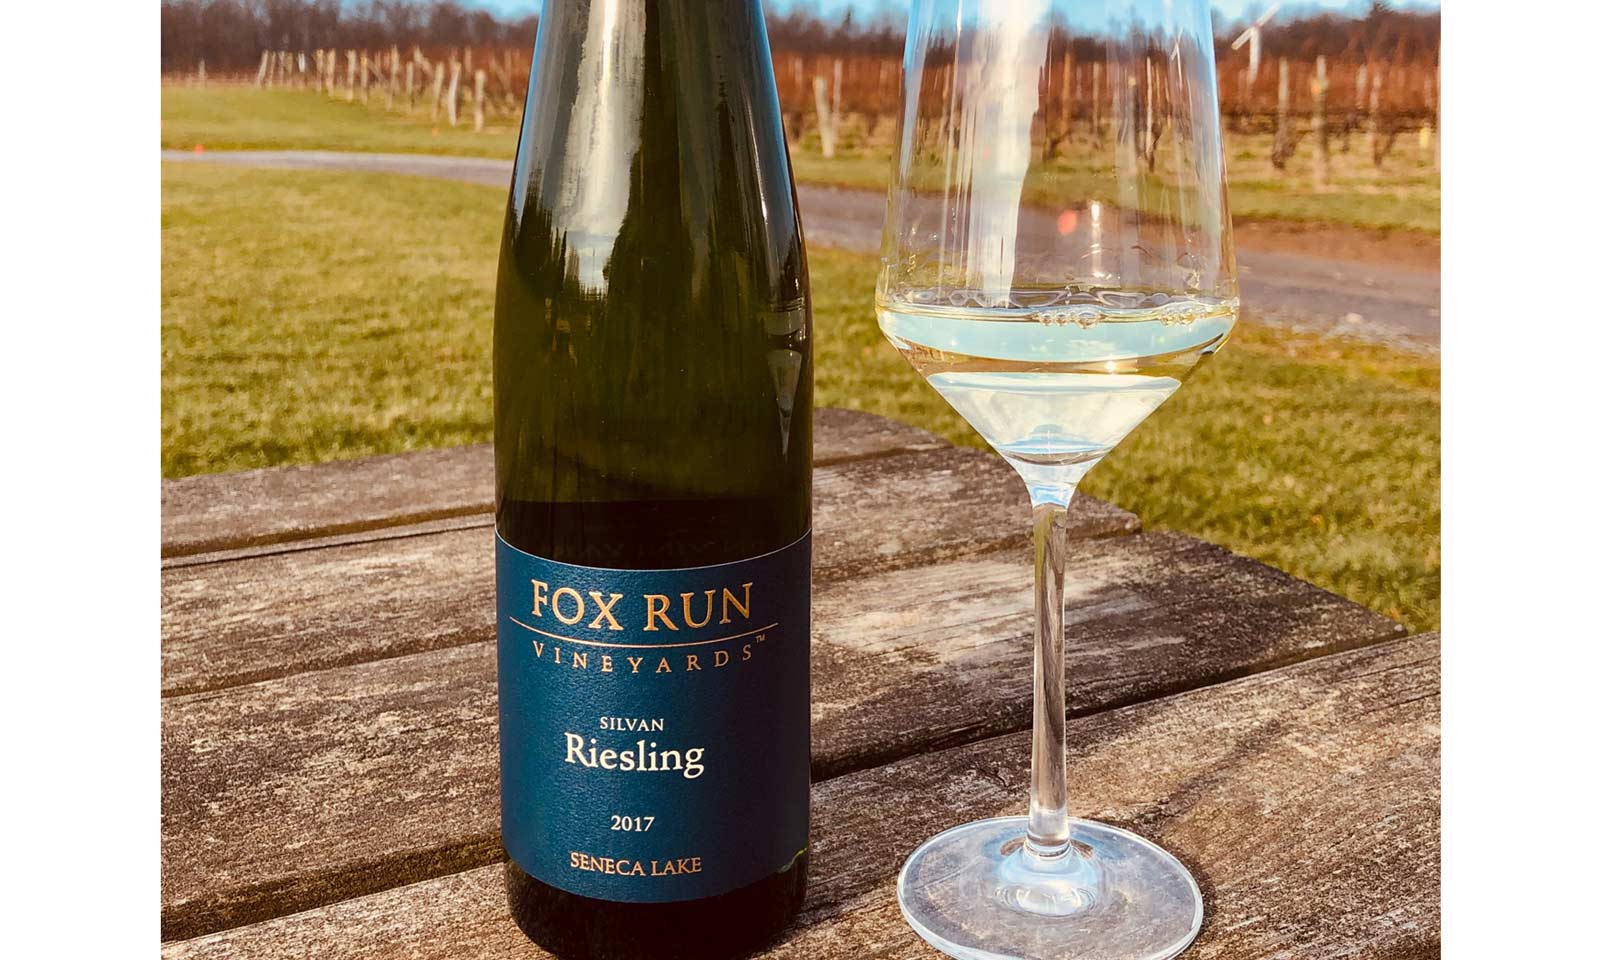 Fox Run Riesling sits on a picnic table in the vineyard